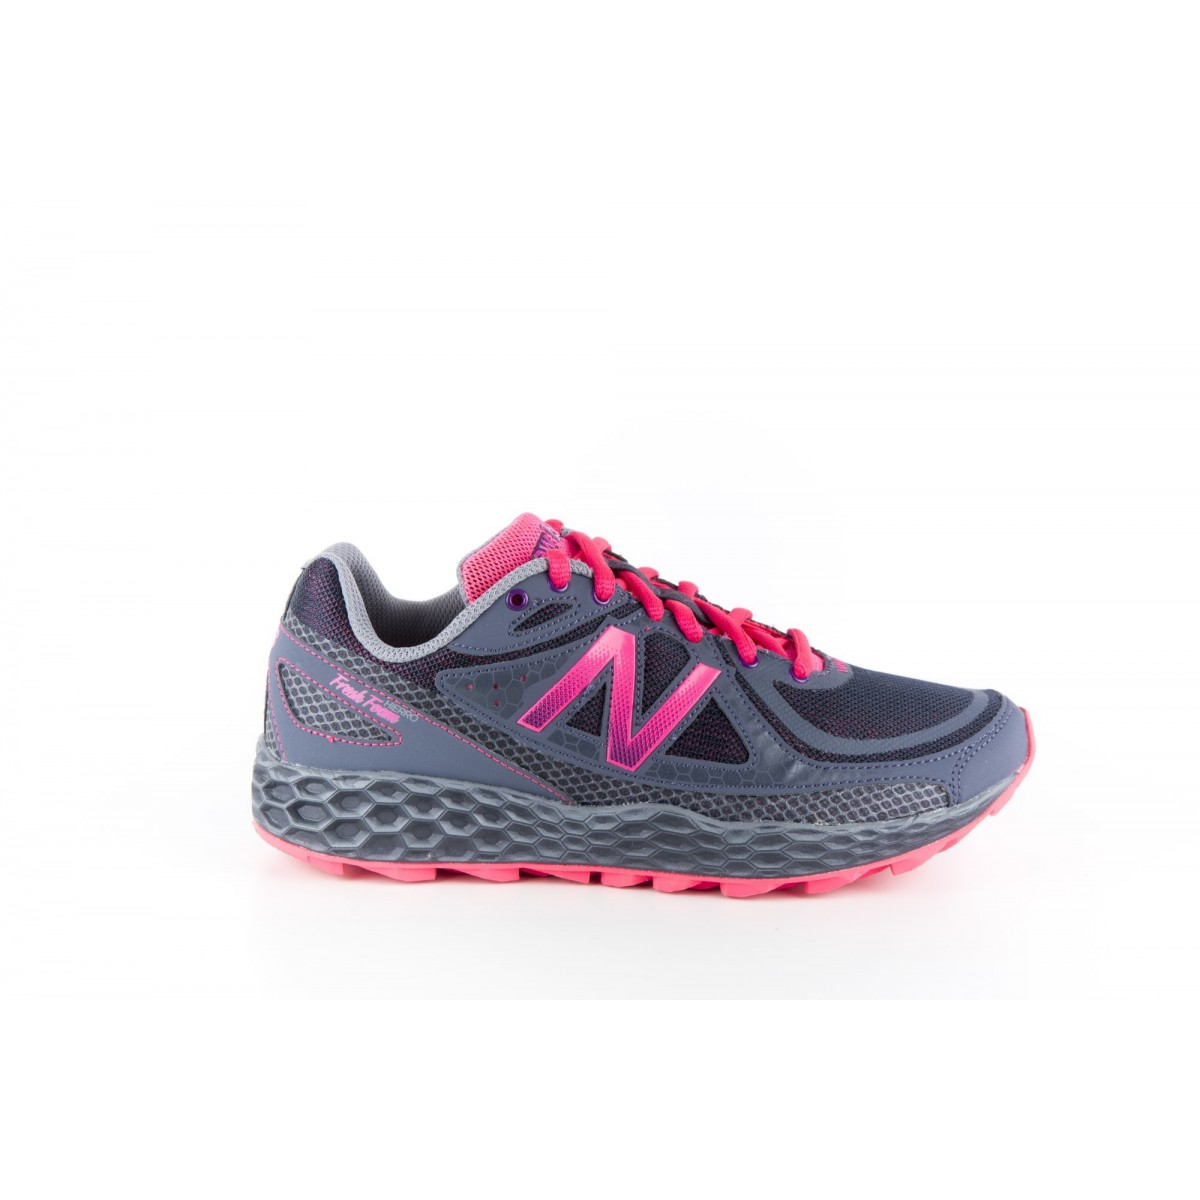 Schuhen New Balance - Wthier Running Fashion Fondo Trail